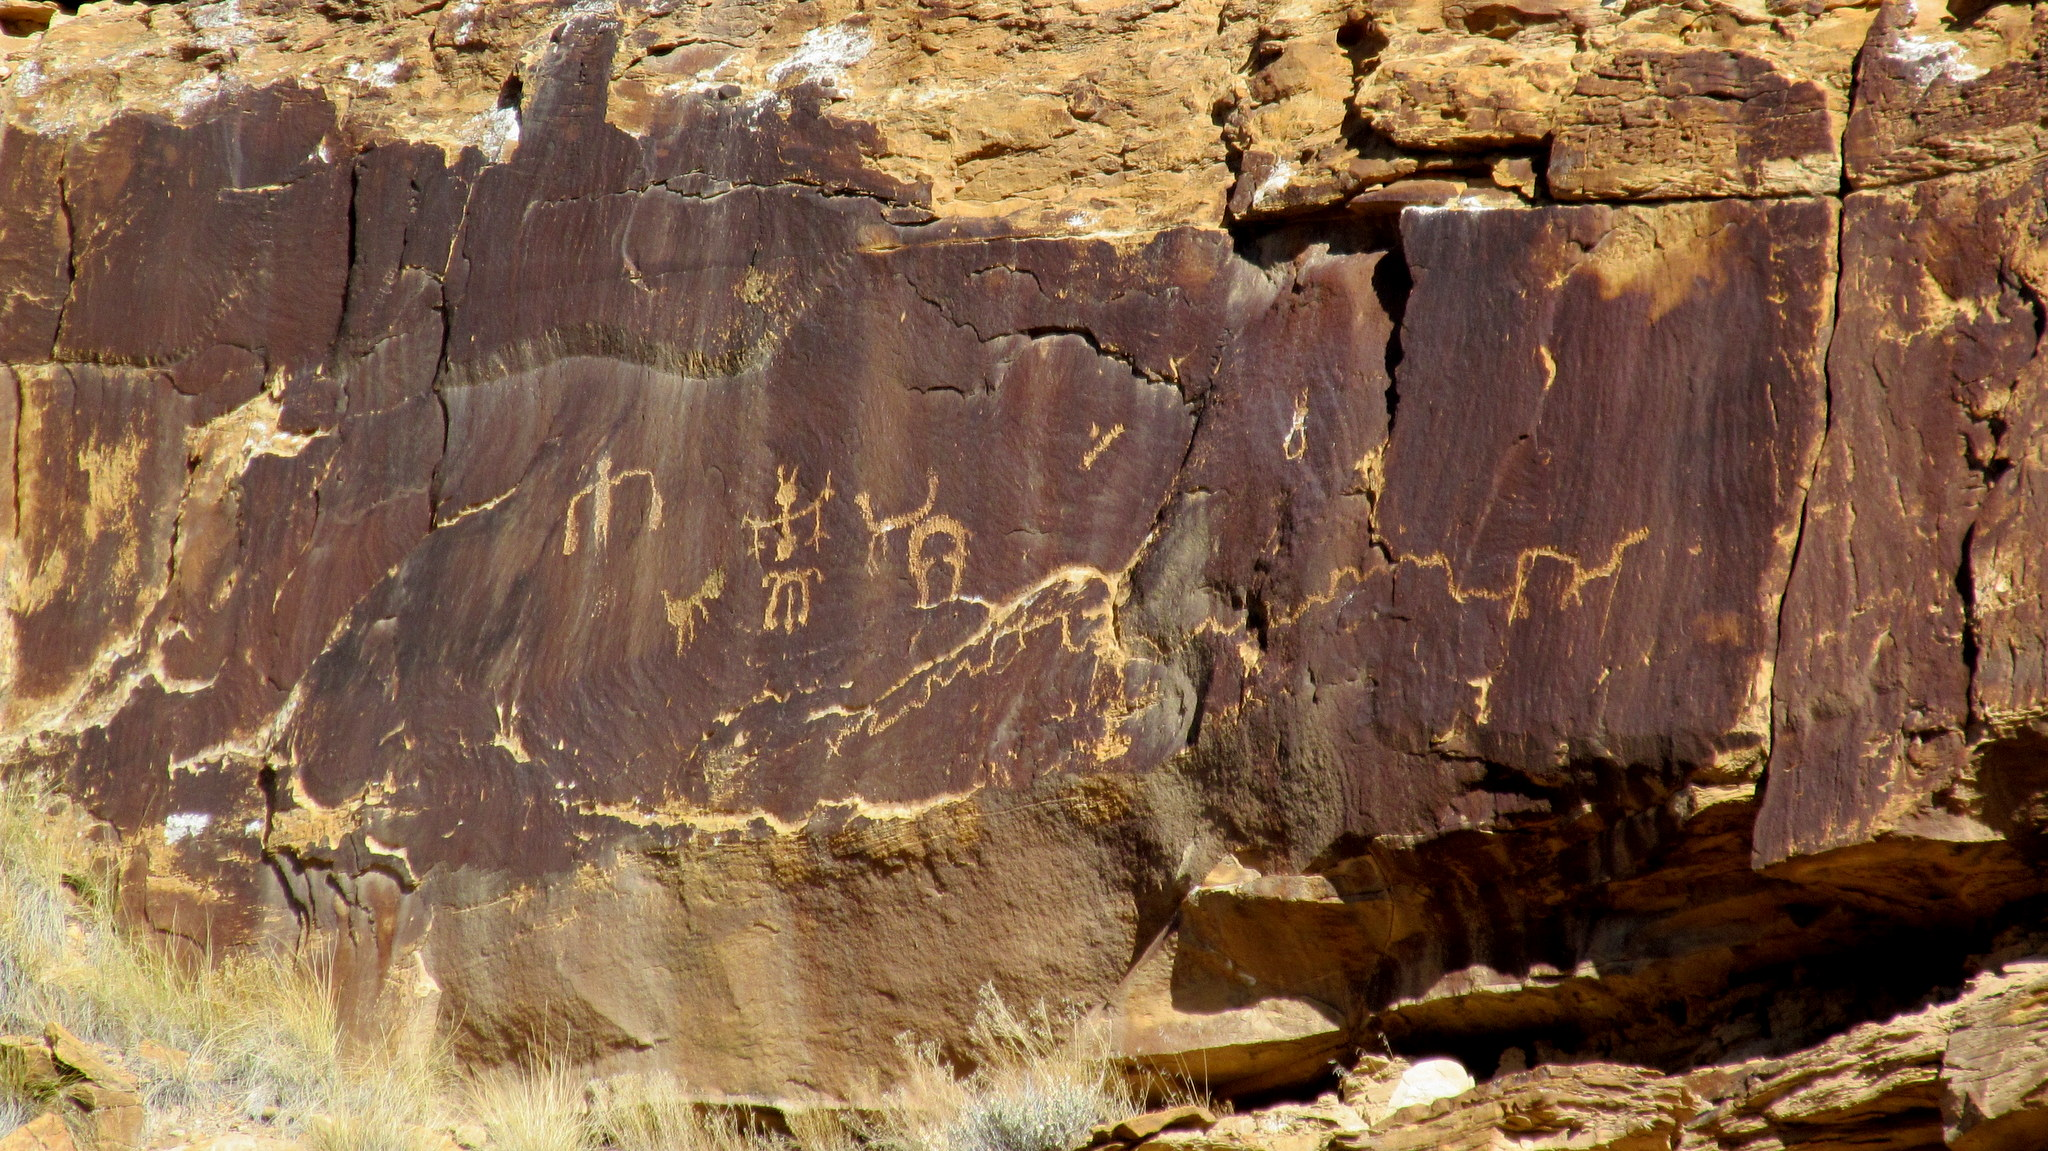 Photo: Small petroglyph panel along my climbing route